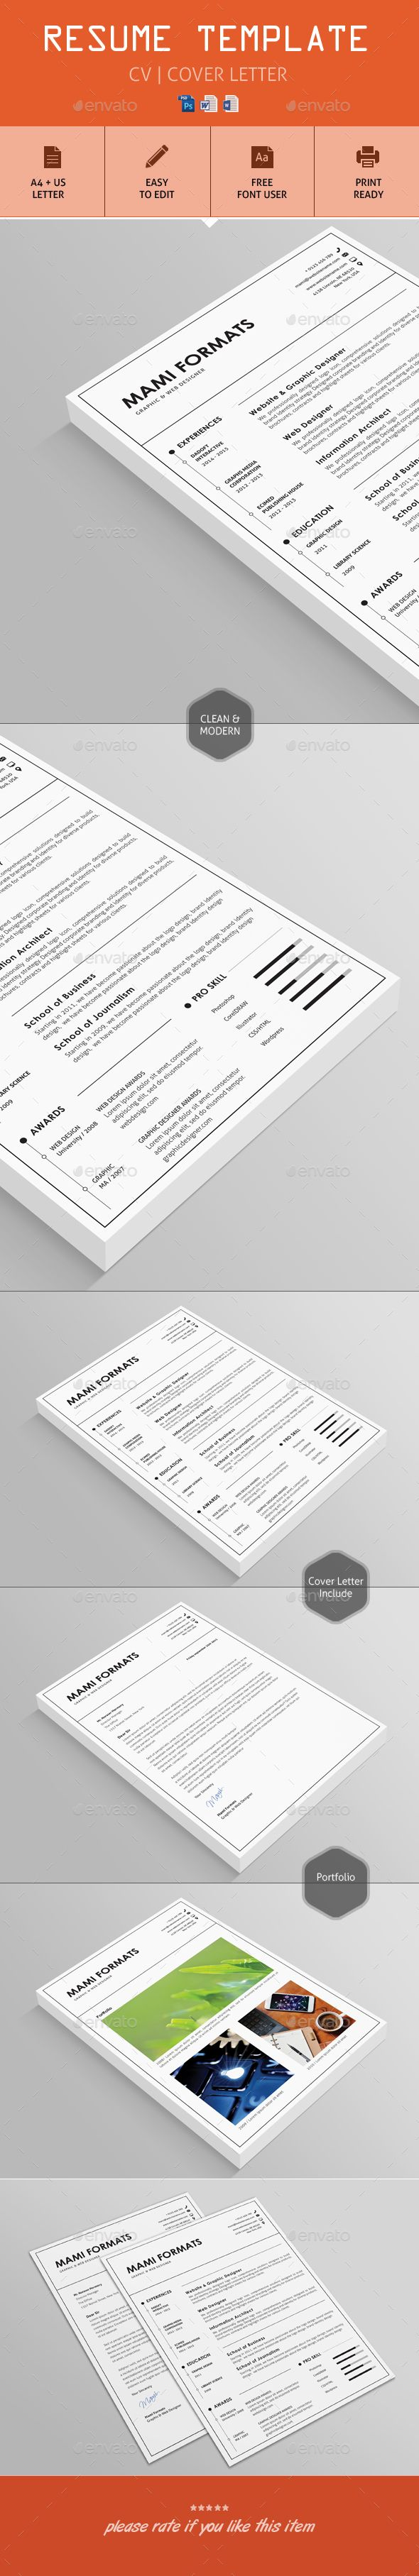 25 best ideas about resume fonts on pinterest resume resume ideas and good fonts - Free Resume Fonts